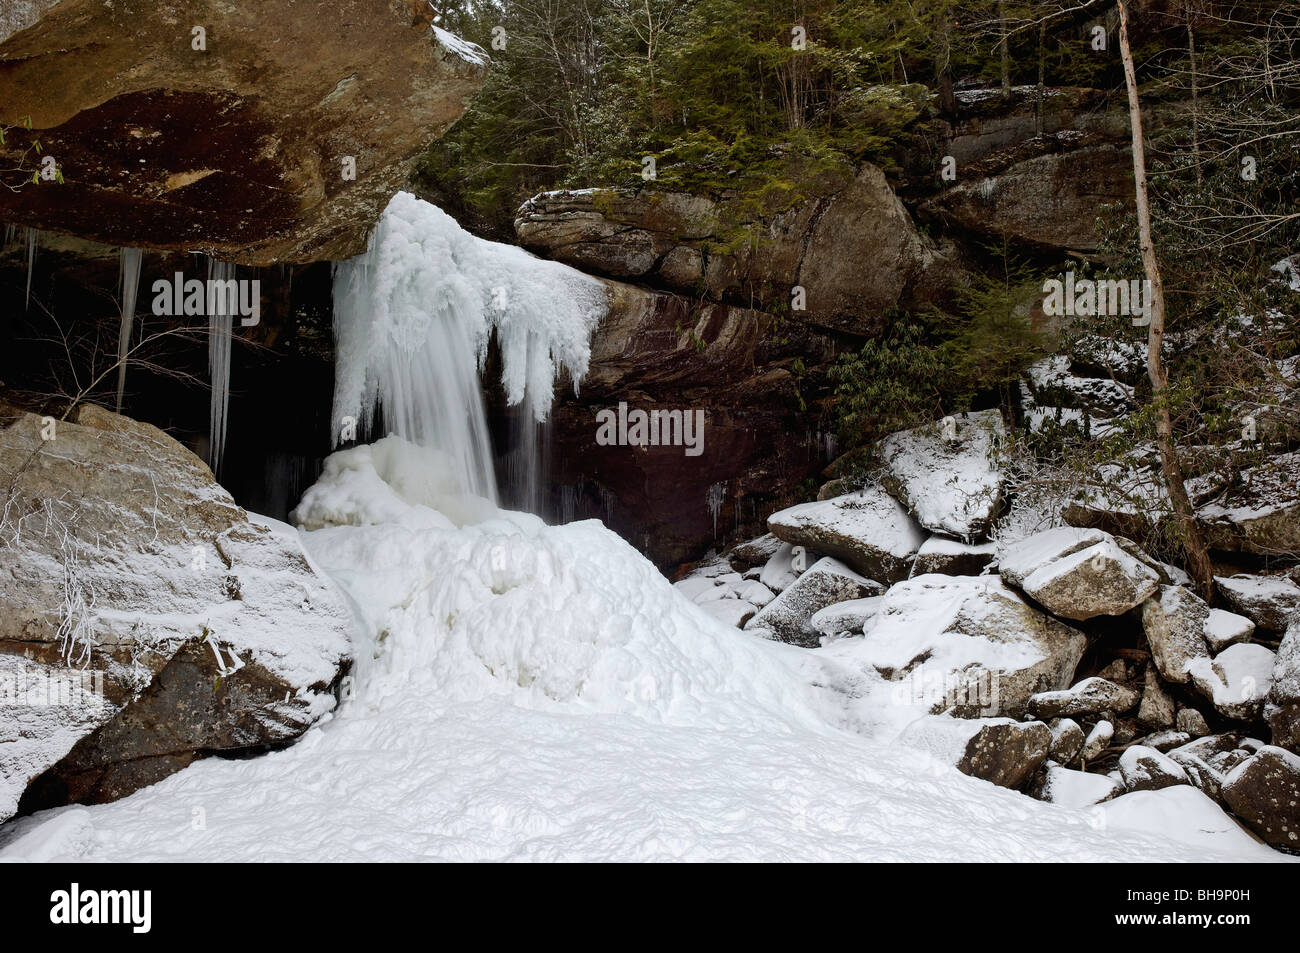 Snow and Ice Surrounding Eagle Falls in Cumberland Falls State Park in Kentucky - Stock Image